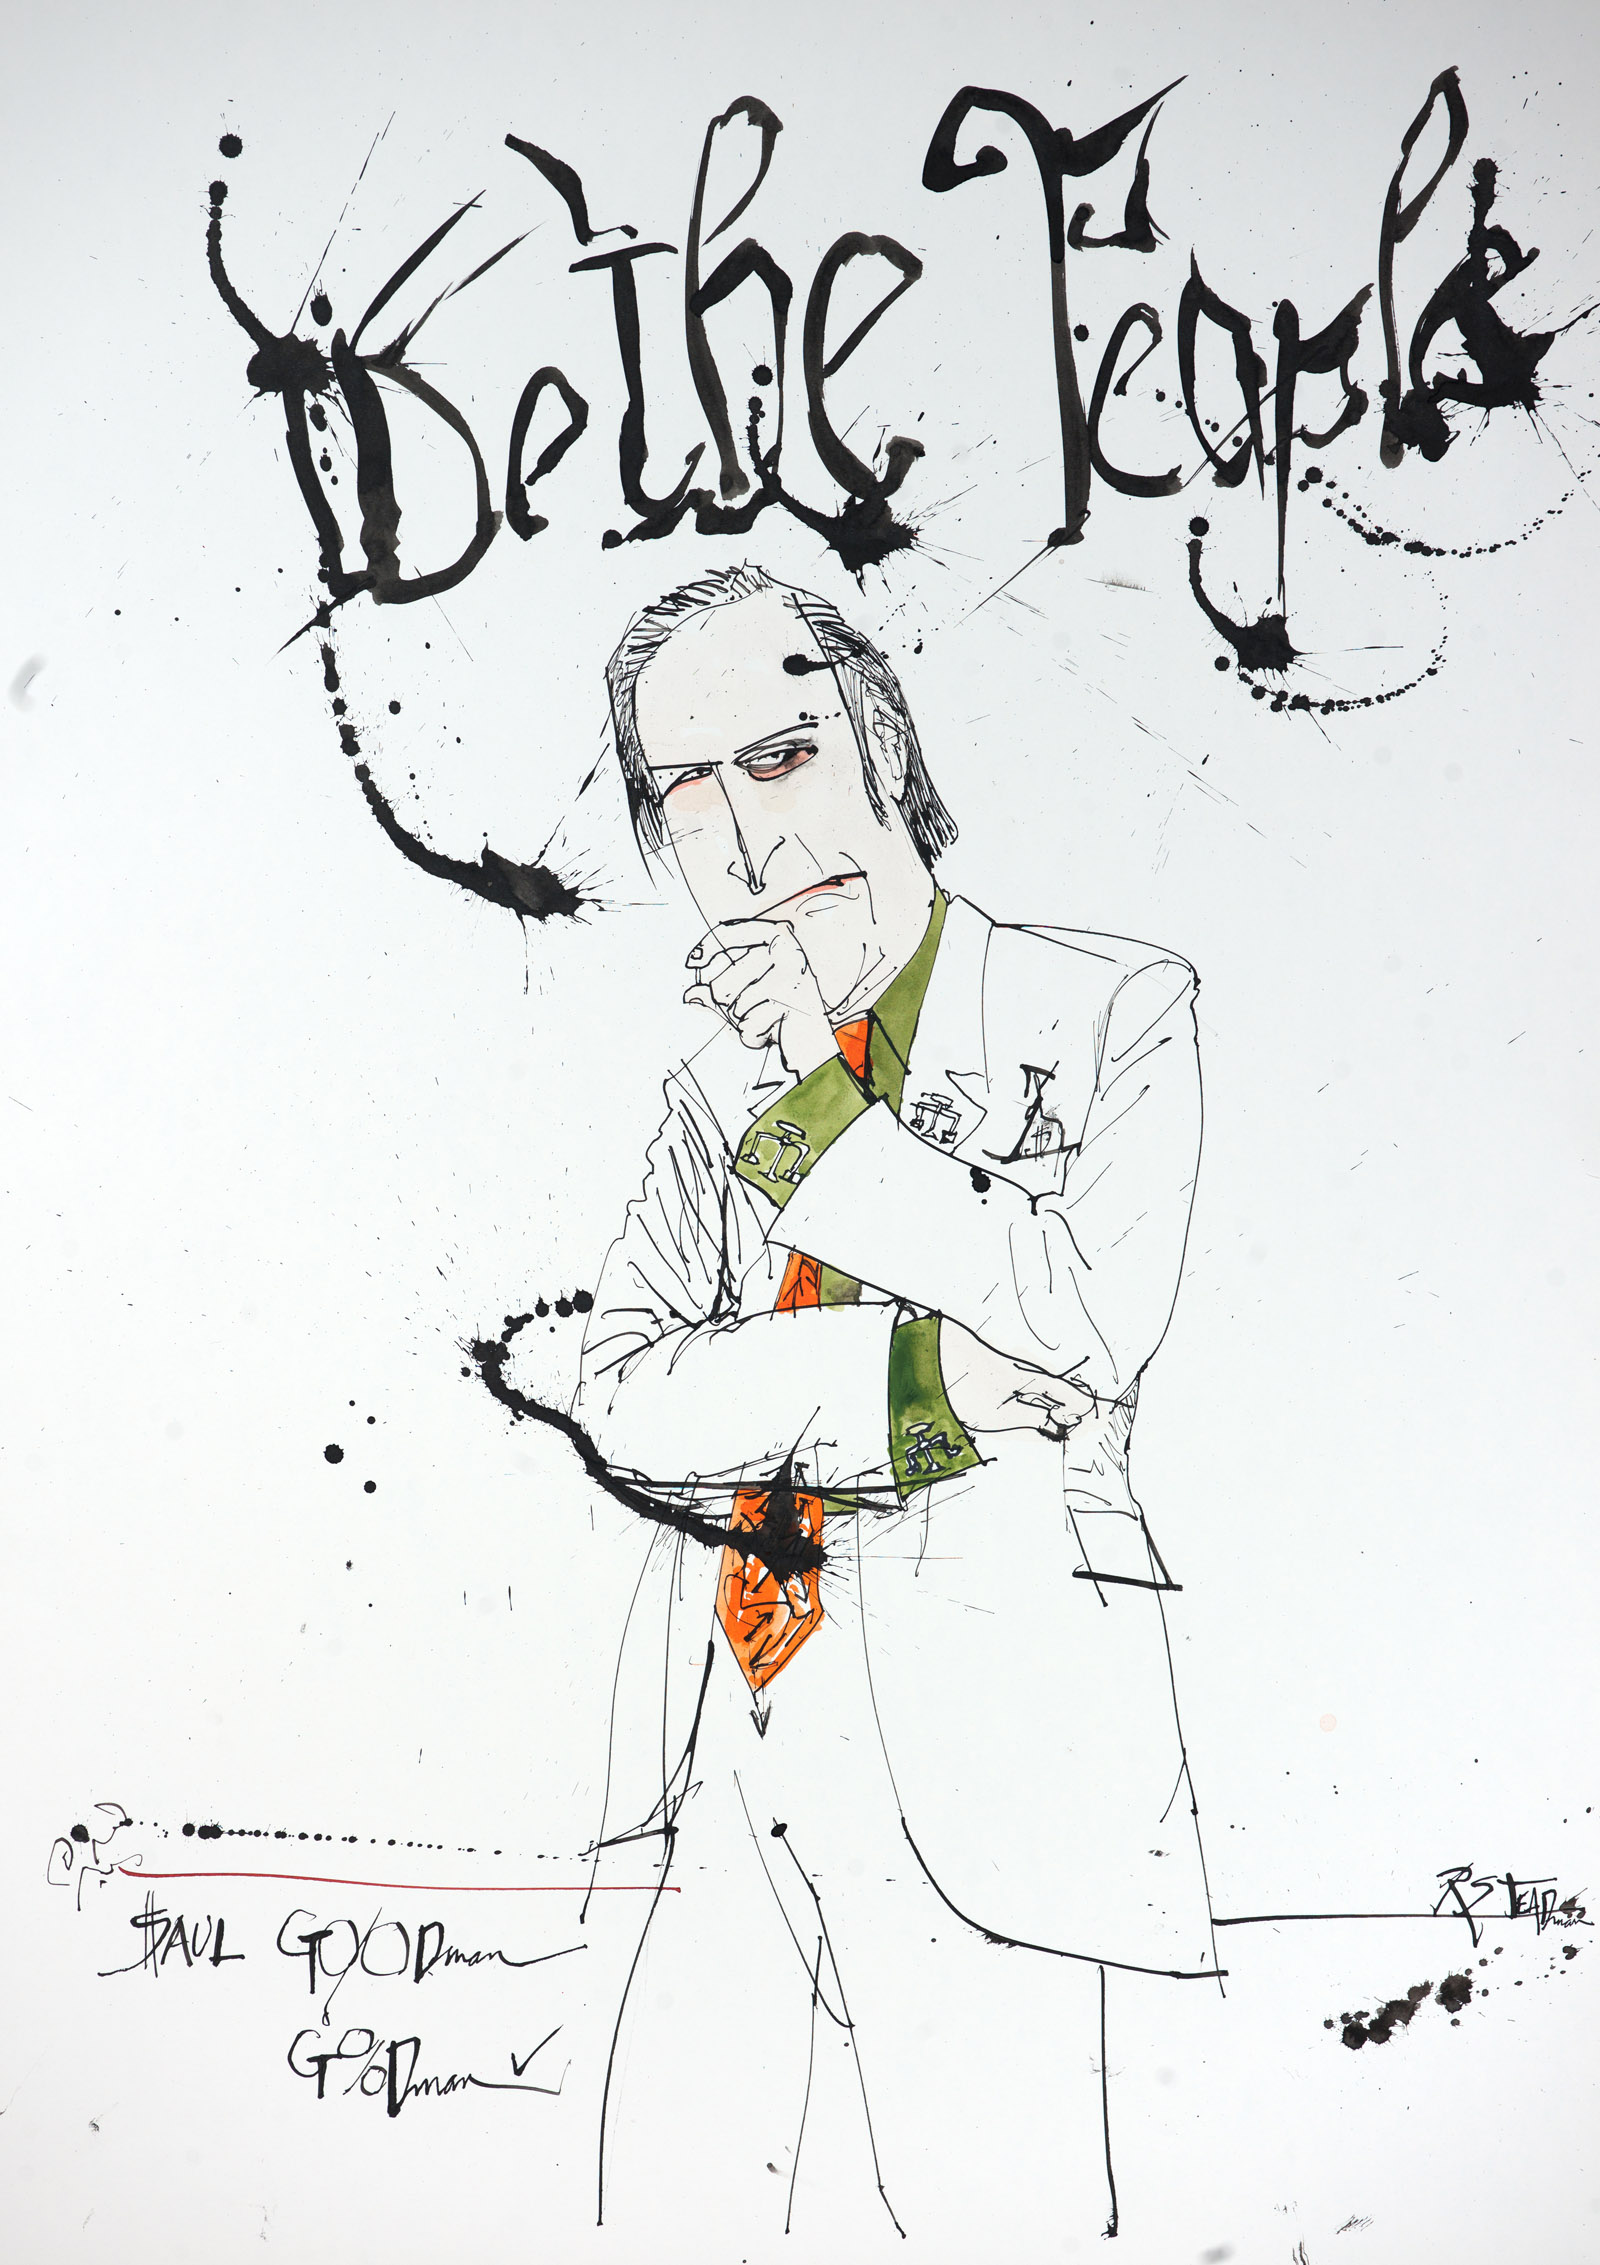 A portrait of the character, Saul Goodman from the TV show, Breaking Bad by Ralph Steadman